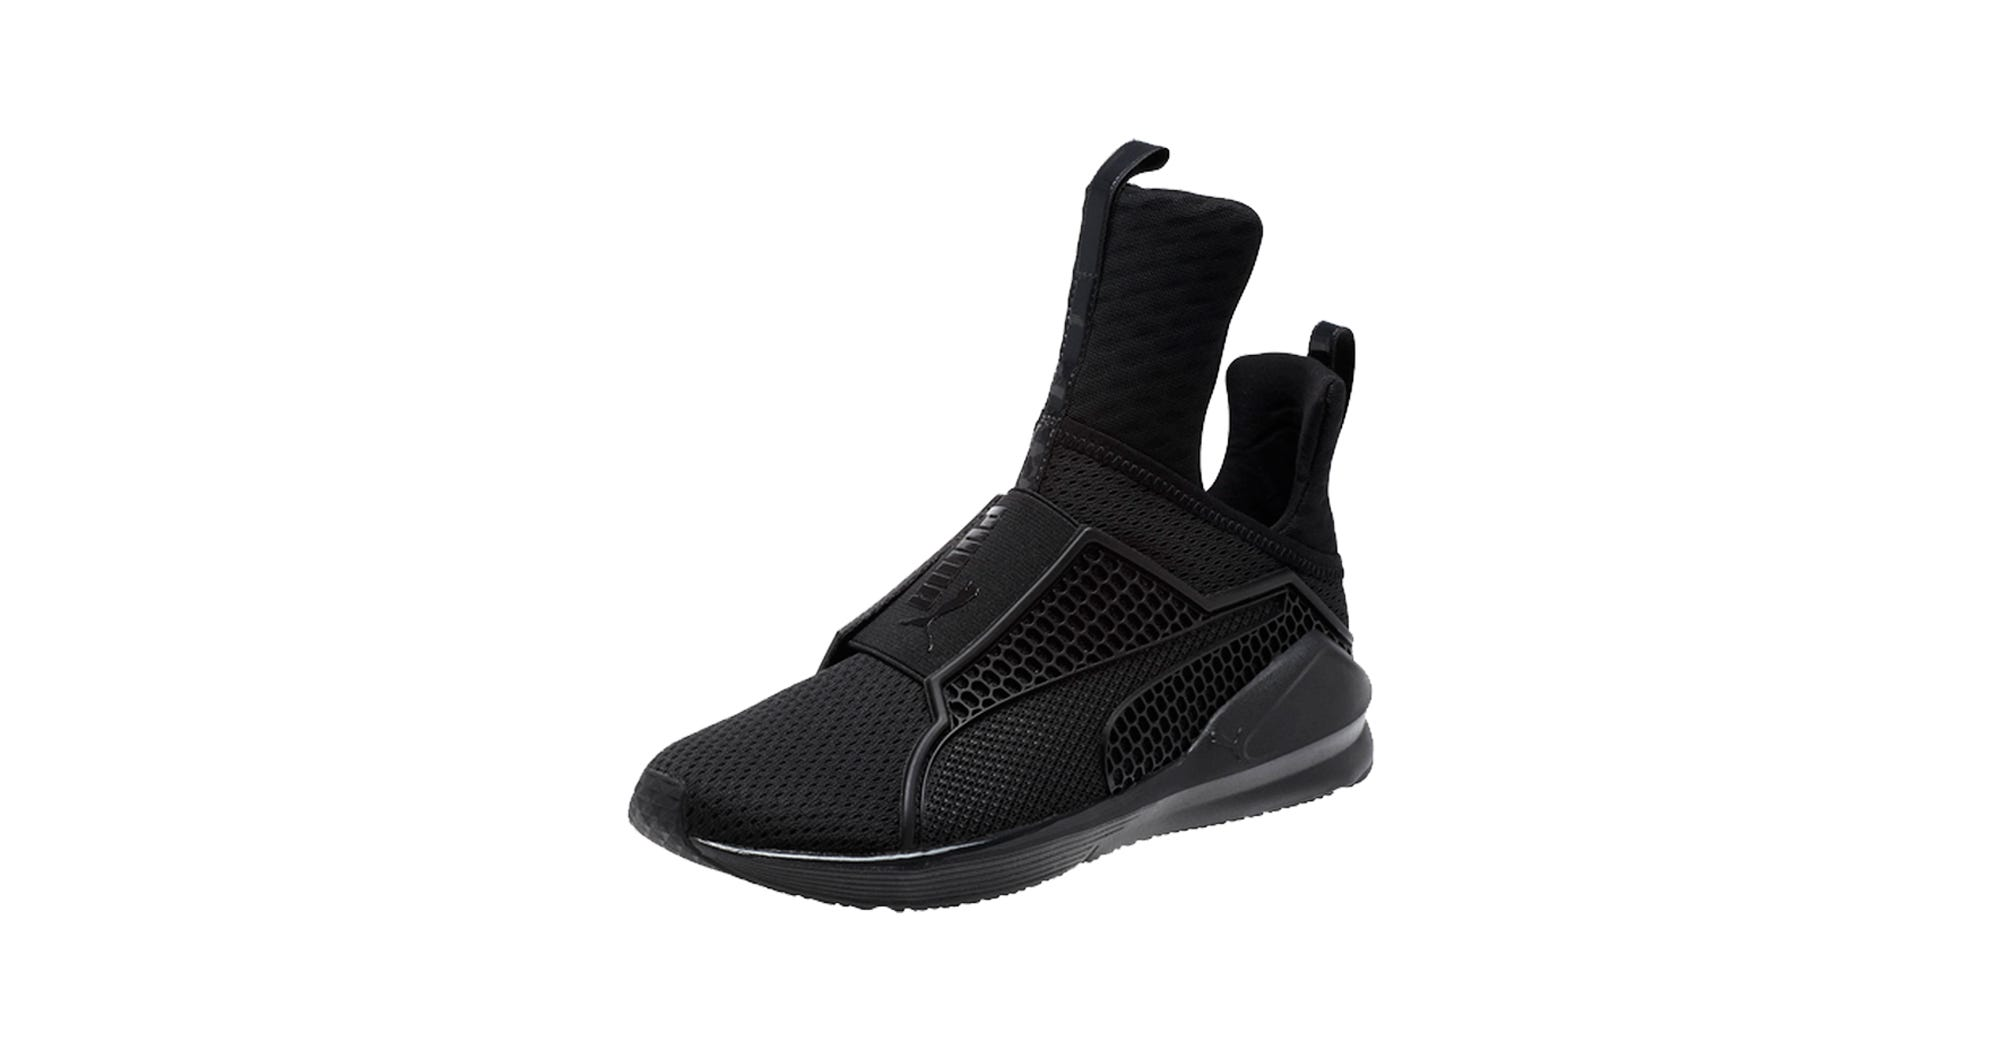 cf2c2d2a73c6 Rihanna Puma Fenty Best Selling Sold Out Trainers